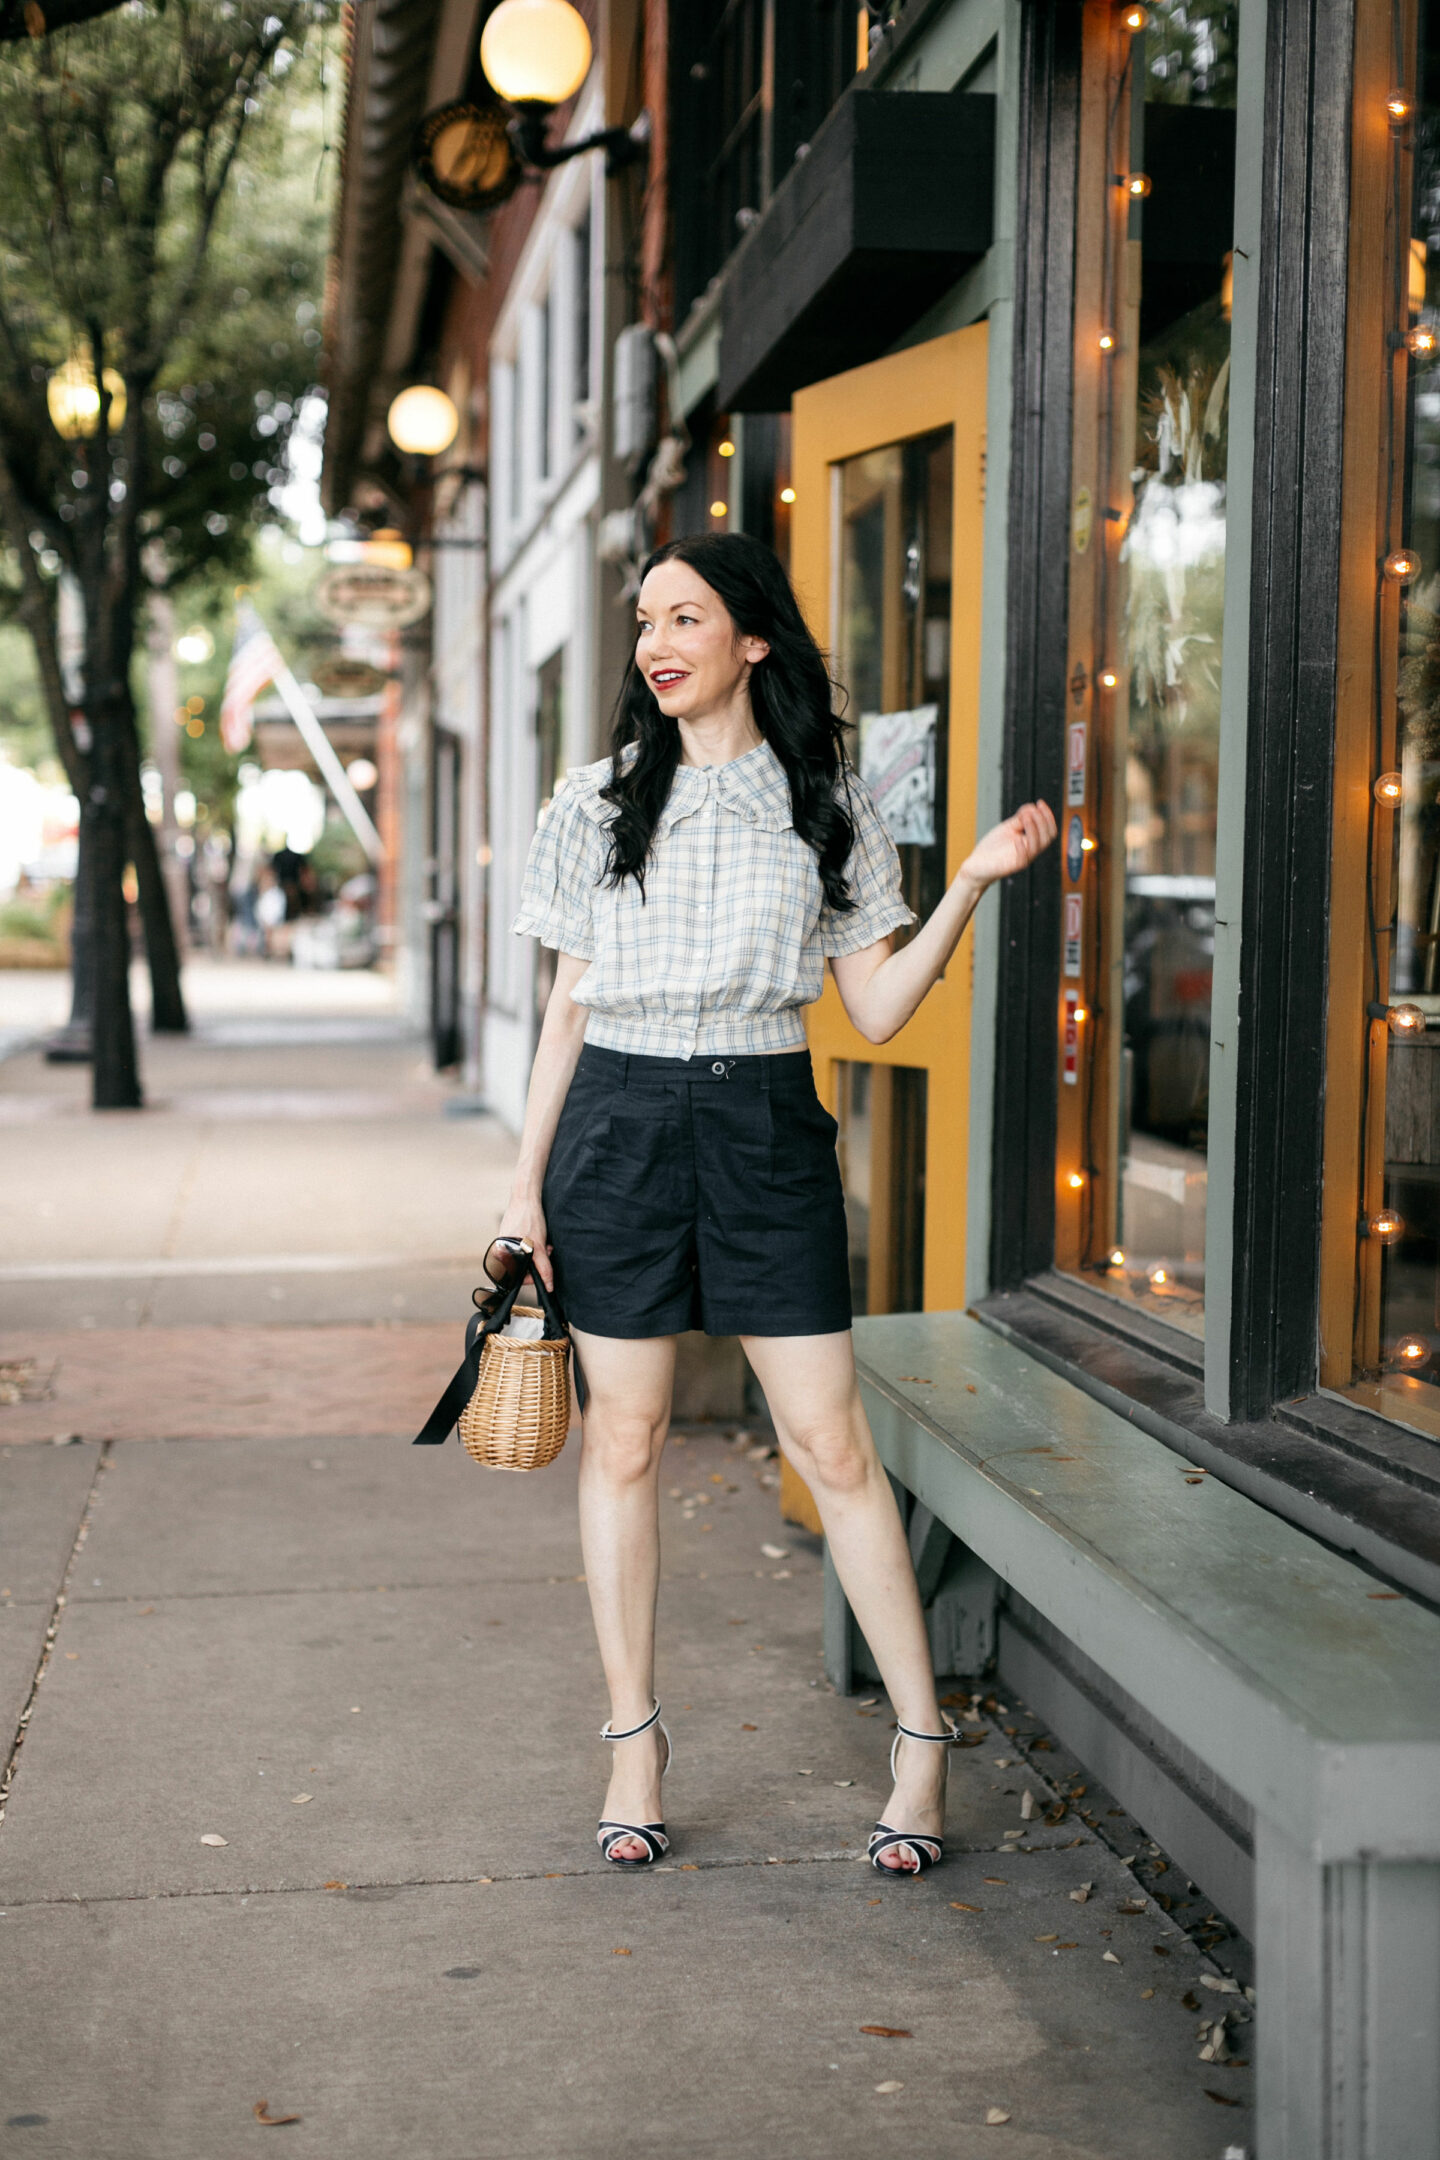 Doen Shirt and Linen Shorts, a fall transitional look styled by top Dallas fashion blogger, Pretty Little Shoppers.